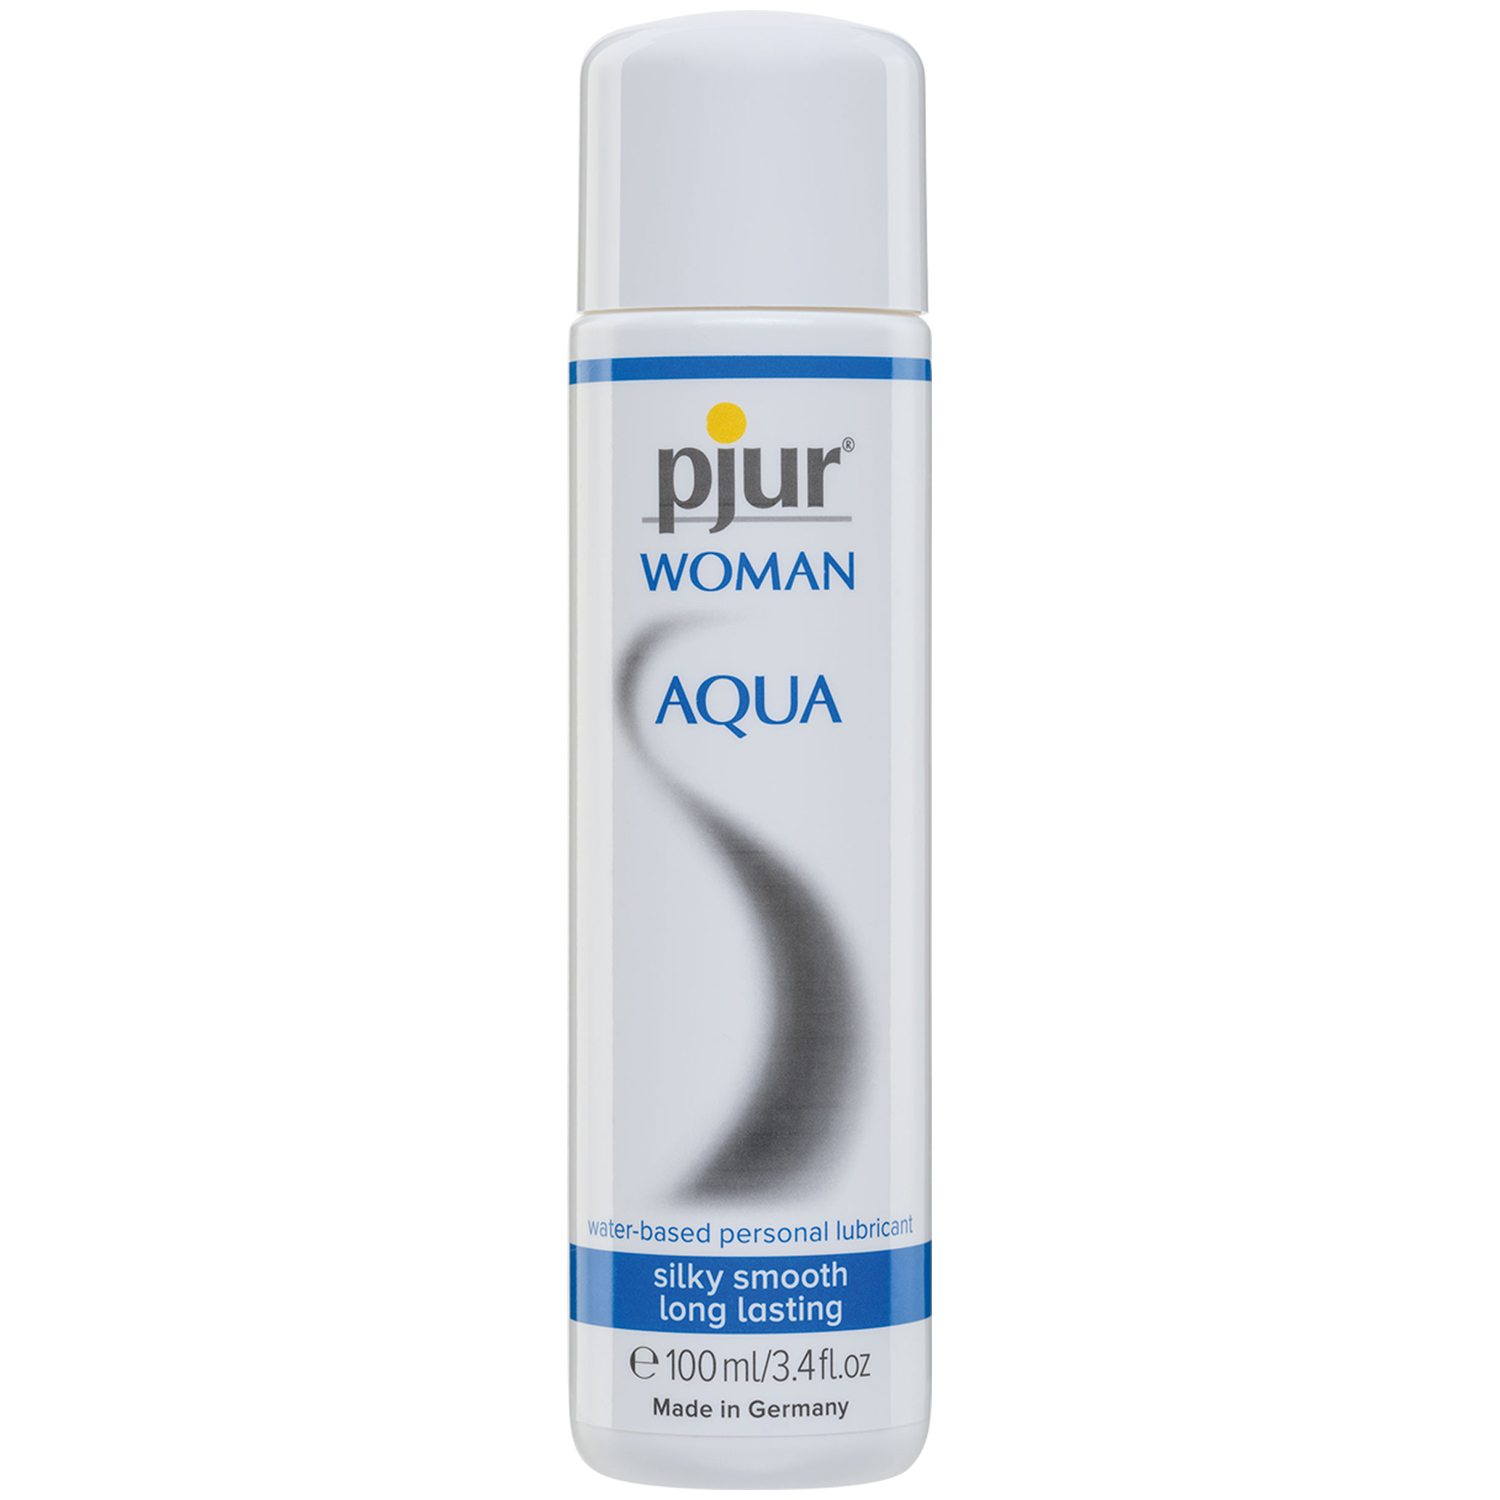 Pjur Woman Aqua Glidecreme 100 ml thumbnail